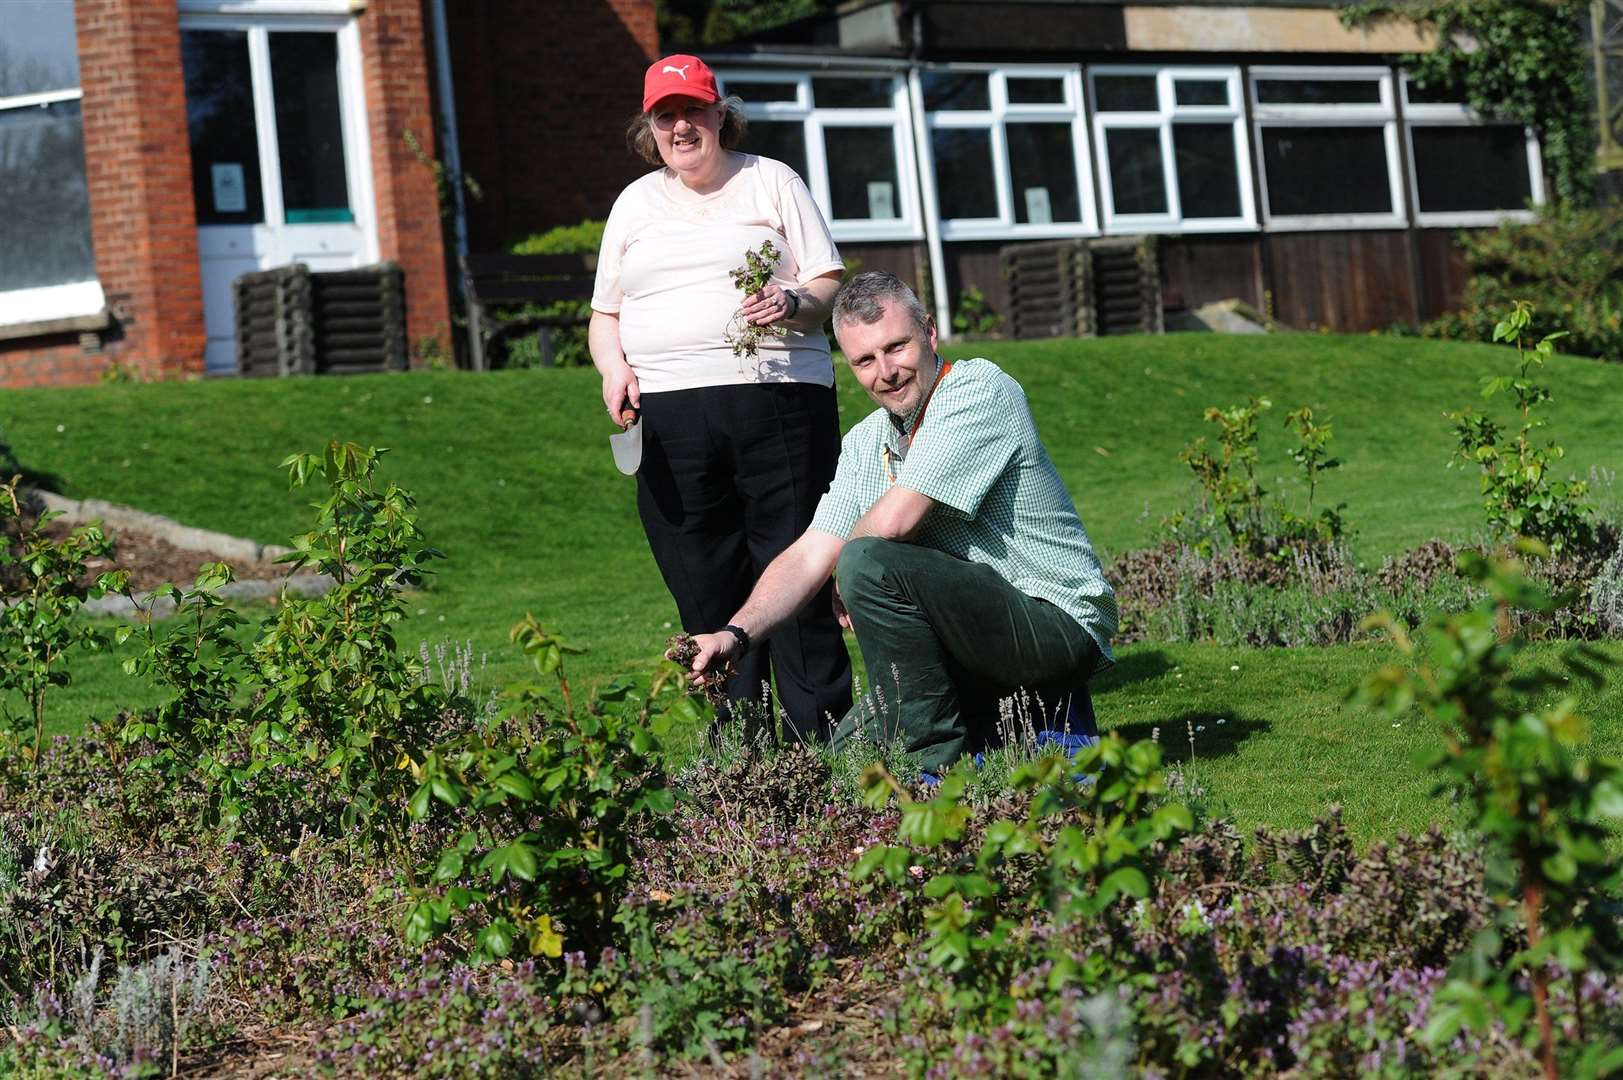 ActivLives are starting community gardening at Belle Vue Park in Sudbury...Pictured: Susan Fuller from the Bridge Project and Dan Wheals from ActivLives...PICTURE: Mecha Morton. (14855339)